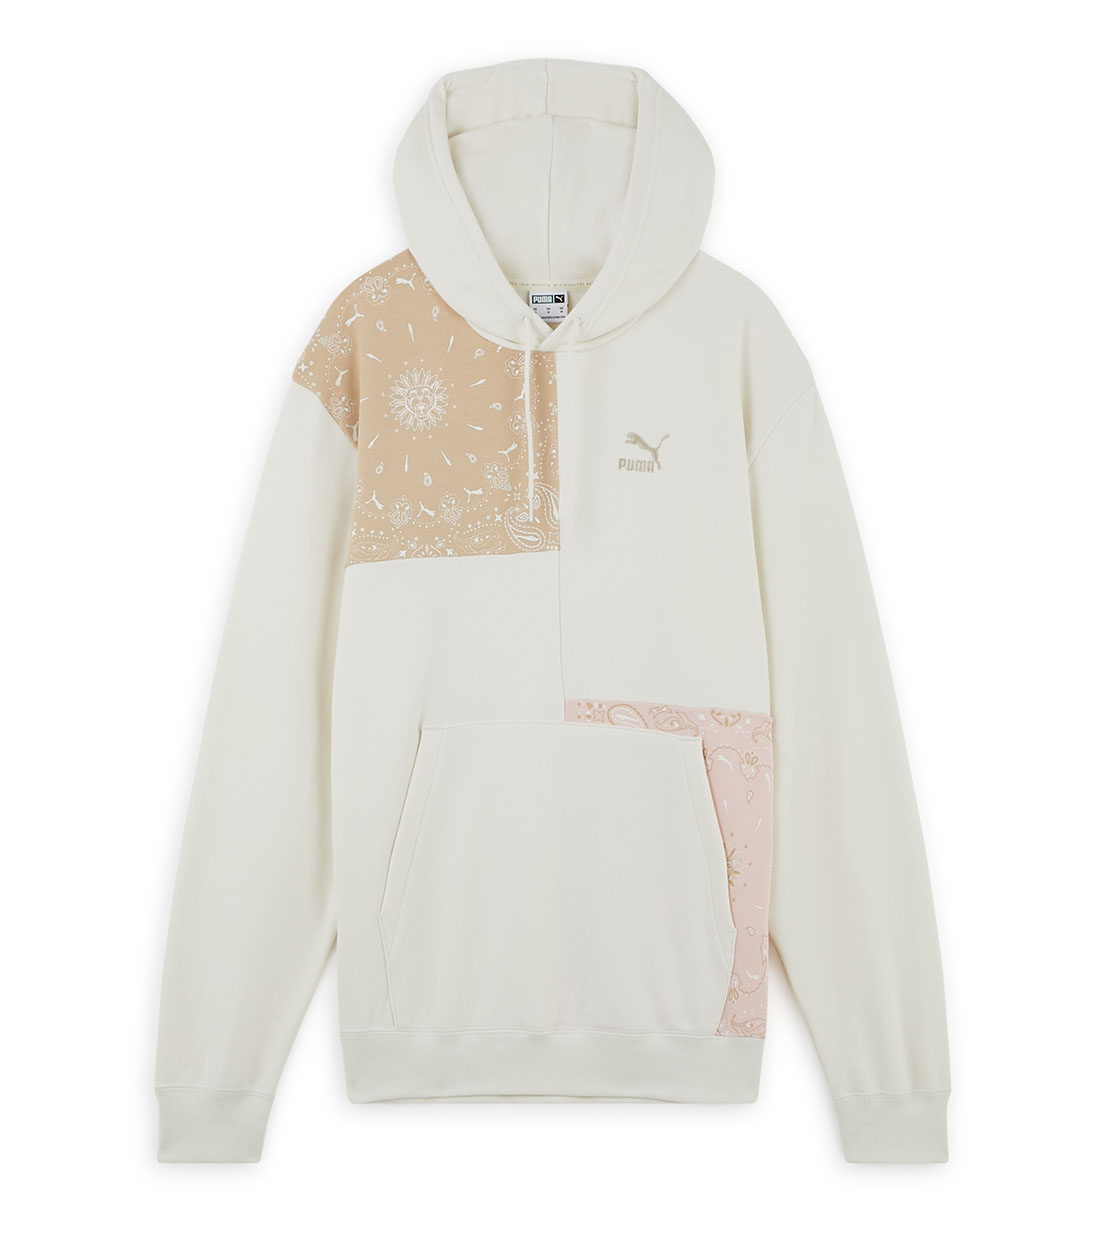 Courir - Collection Capsule Paisley - PUMA Hoodie